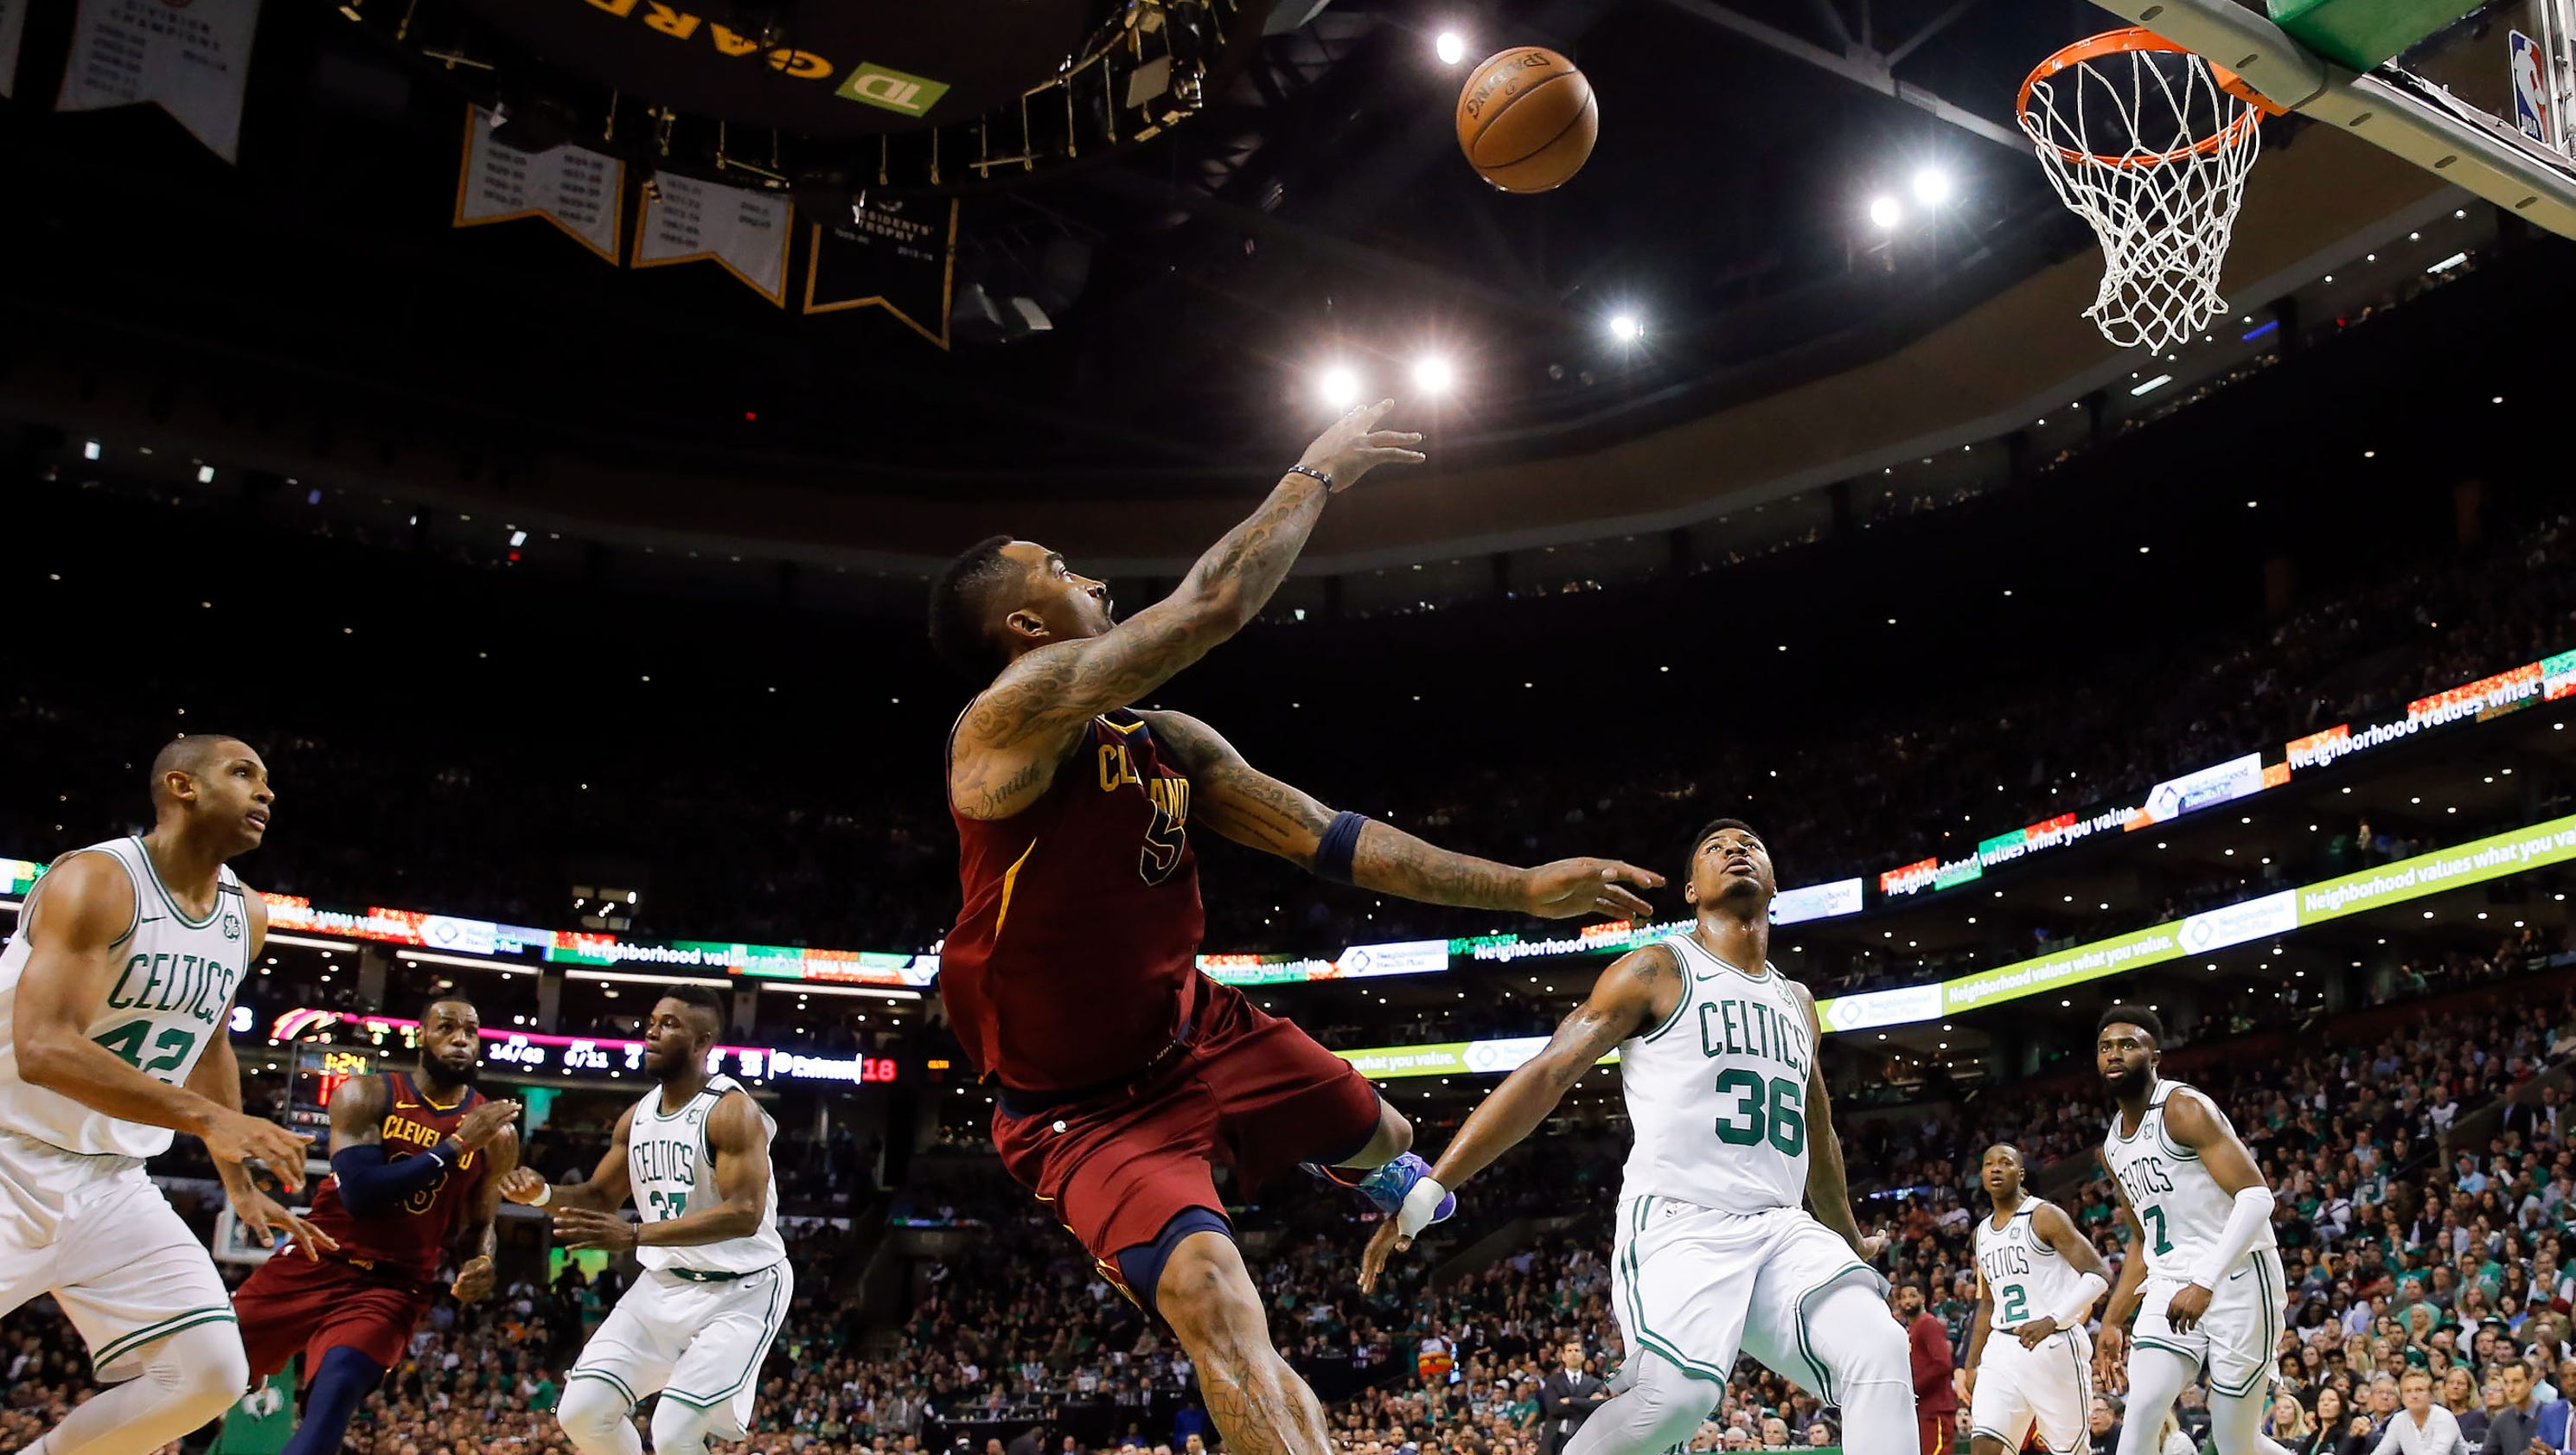 Name Of Nba Finals | All Basketball Scores Info